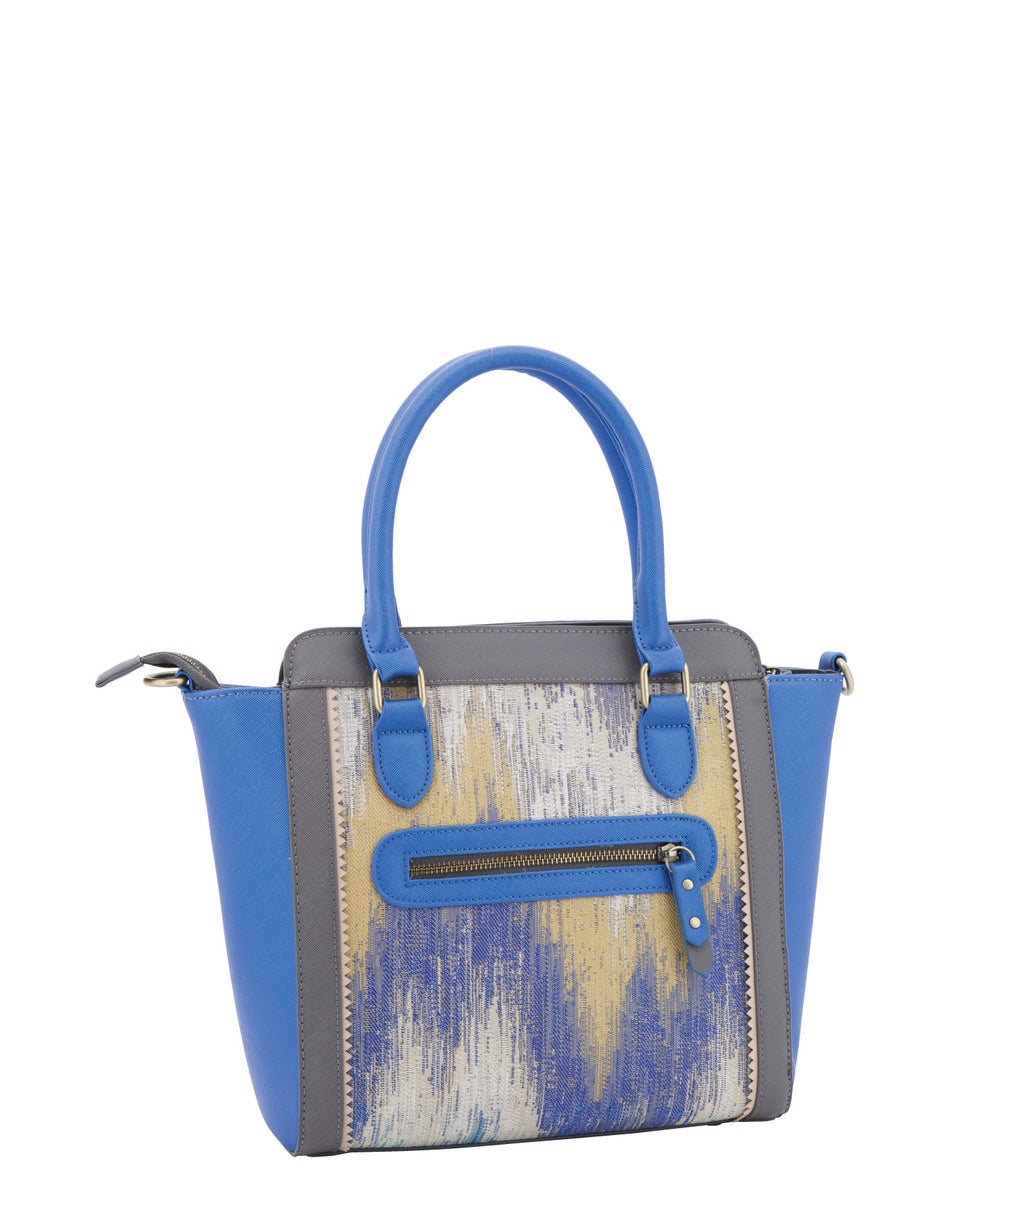 CASSIE Shopper Tote - Watercolour